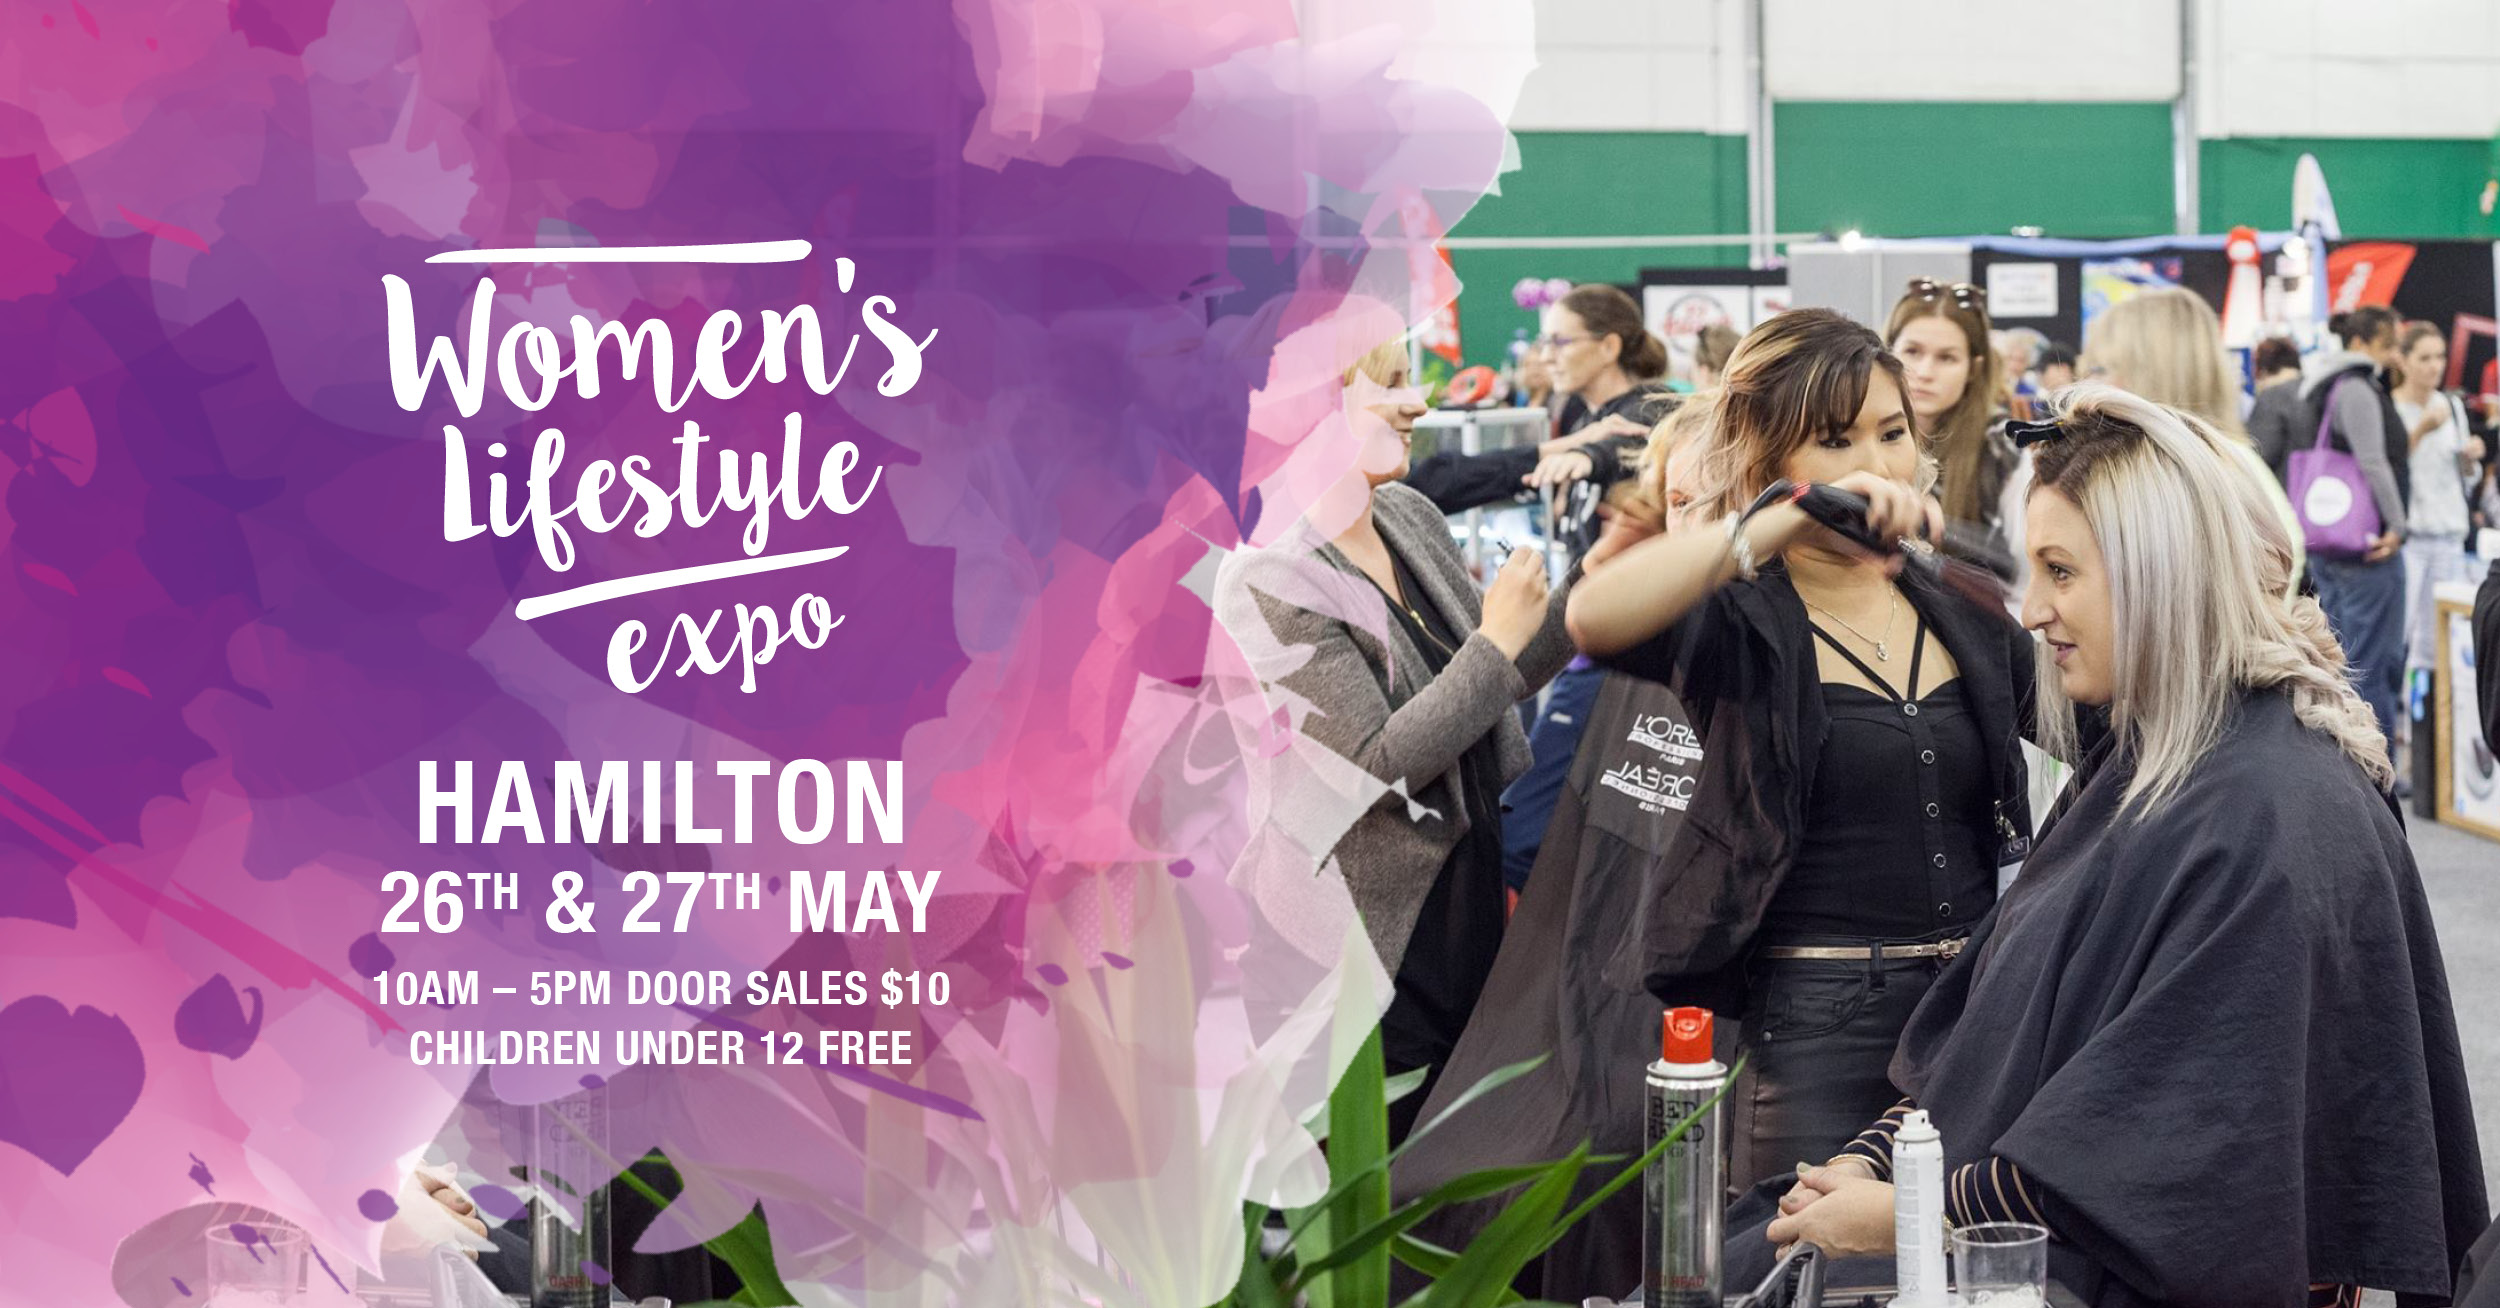 0909a94ebbd179 Come join us at one of Waikato s largest events! The Hamilton Women s  Lifestyle Expo is a two-day event for women of all ages.